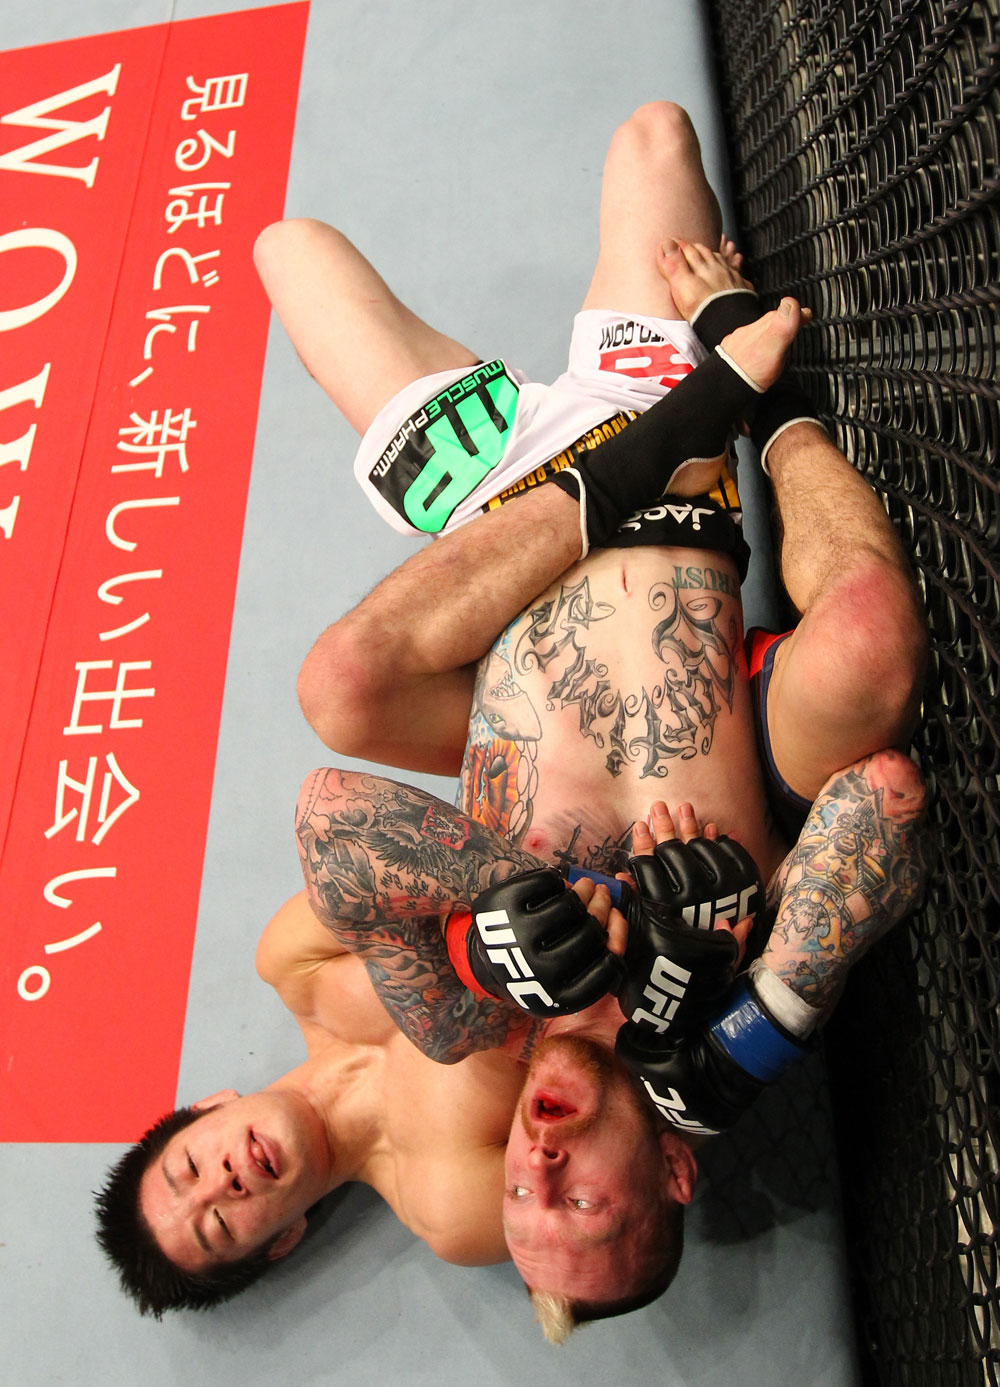 SAITAMA, JAPAN - FEBRUARY 26:  (L-R) Hatsu Hioki attempts to secure a submission hold against Bart Palaszewski during the UFC 144 event at Saitama Super Arena on February 26, 2012 in Saitama, Japan.  (Photo by Al Bello/Zuffa LLC/Zuffa LLC via Getty Images) *** Local Caption *** Hatsu Hioki; Bart Palaszewski